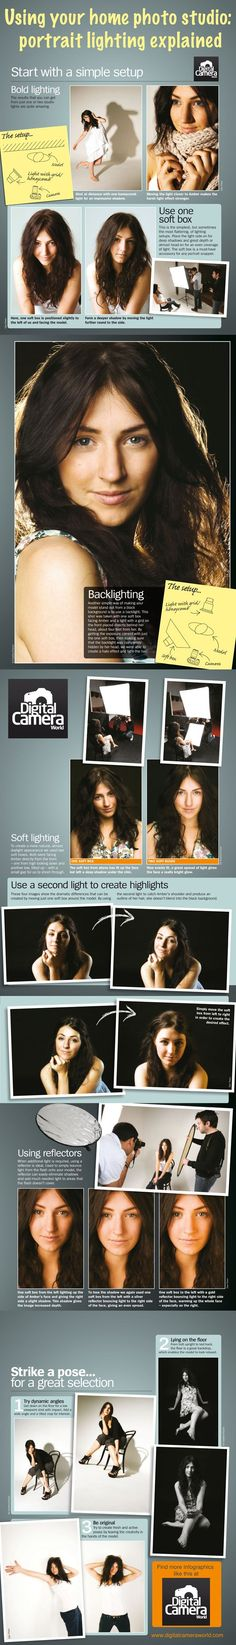 Off-camera portrait lighting and the different types of effects cheat sheet.